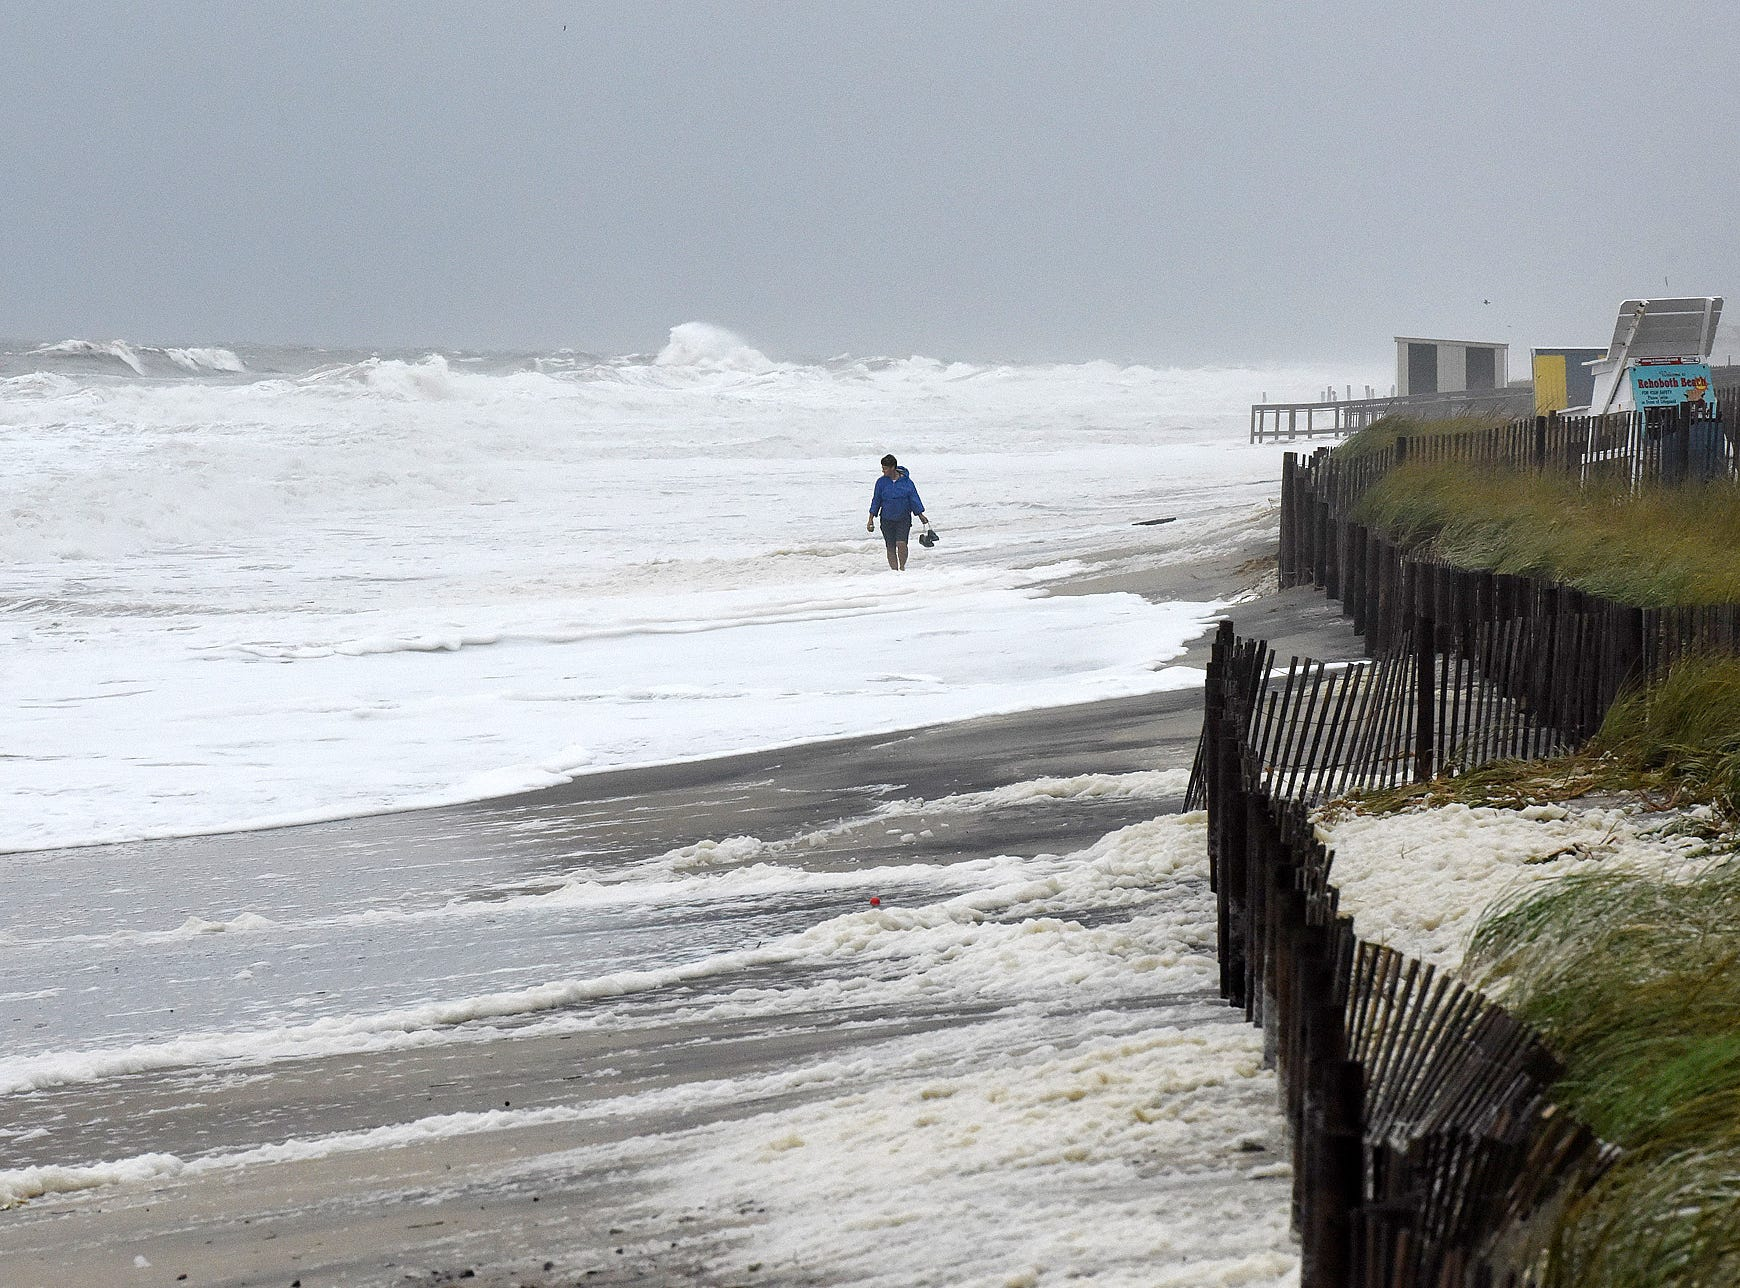 Hurricane Florence is causing stormy conditions and red flag warnings at Rehoboth Beach Monday morning.  Rehoboth city crews removed trash cans and beach mobi-mats from the dune crossings as the surf reaches the boardwalk at high tide.